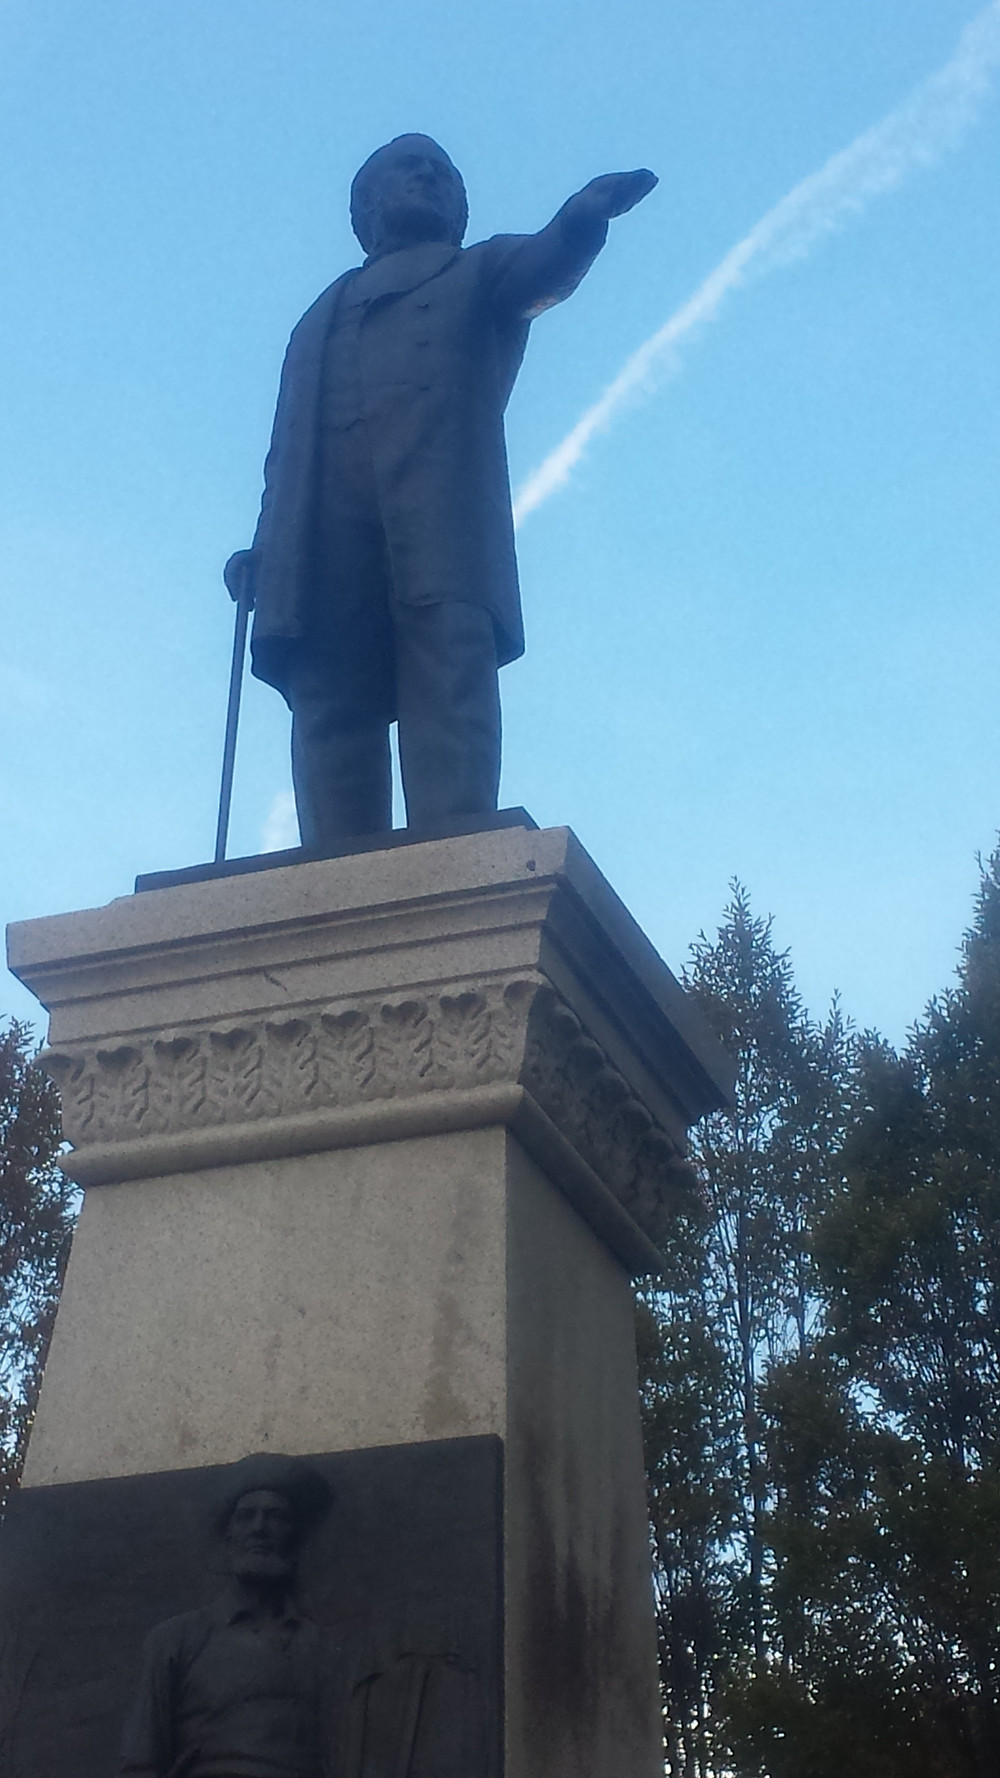 Statue of Brigham Young, the second most important person in Mormon history after founder Joseph Smith.